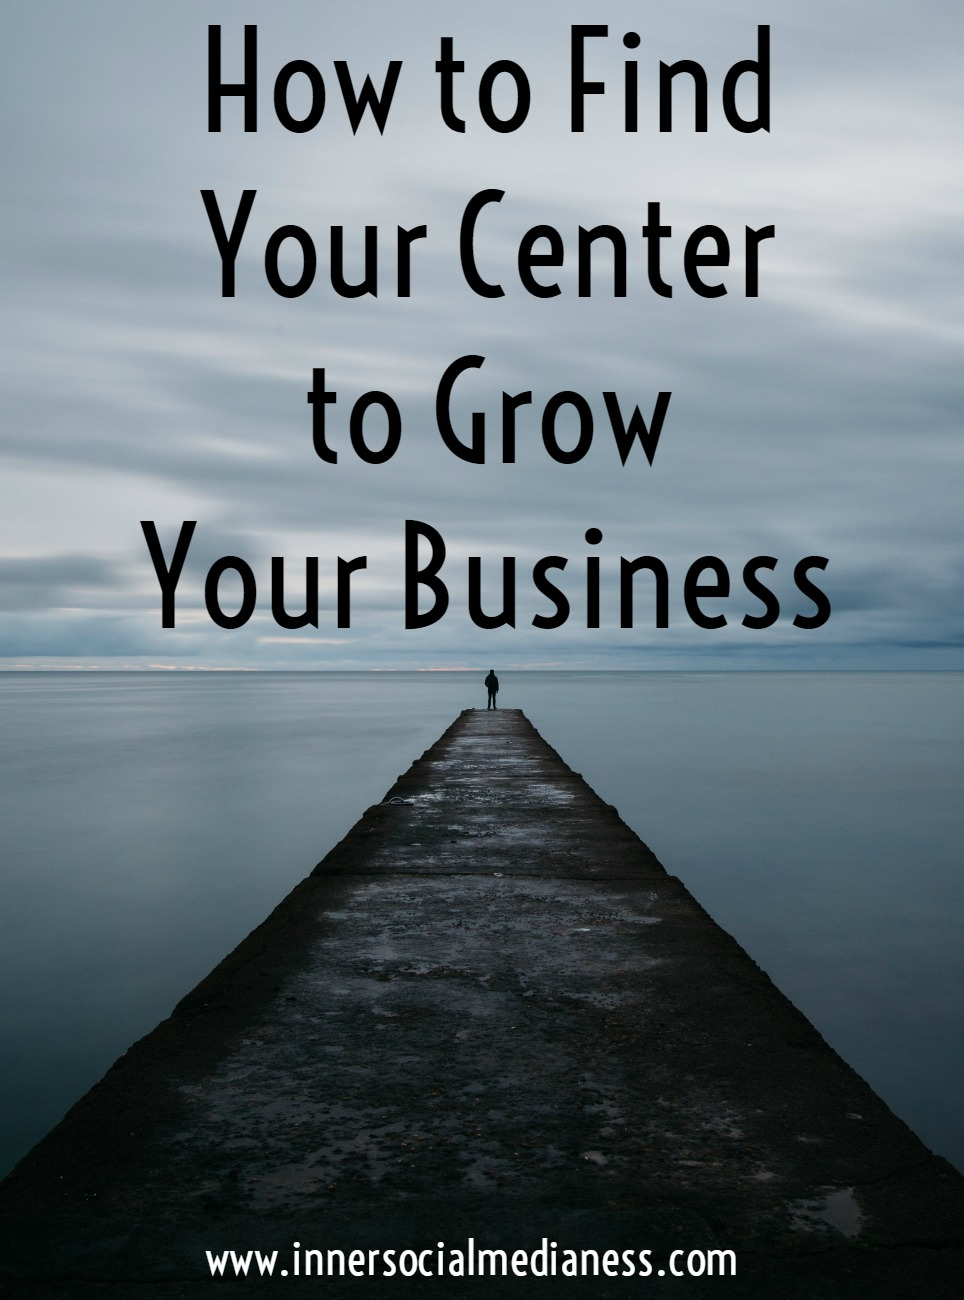 How to Find Your Center to Grow Your Business - There comes a time when you realize you can't be everything to everybody to really grow your business. When you're ready to uplevel your business or blog, you need to find the center of your focus.